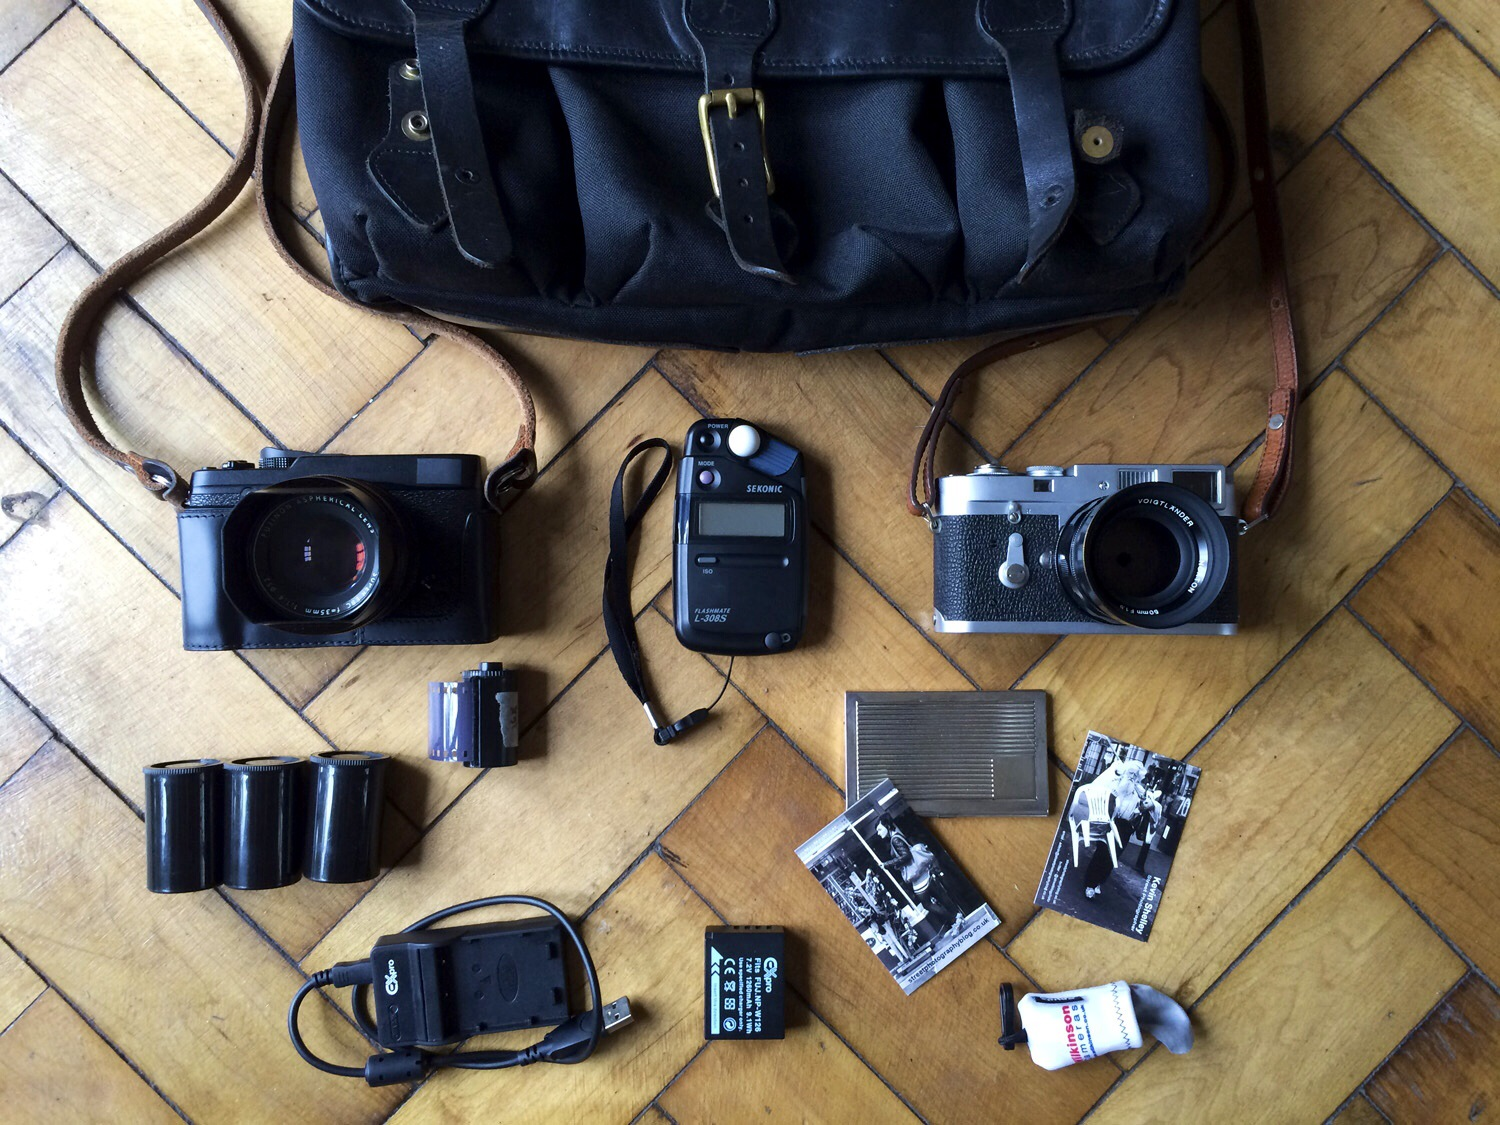 kevin shelley street photography kit bag leica m2 voigtlander 50 1.5 fuji x-e1 xf 35 1.4 sekonic l308s light meter 35mm film m classics bag